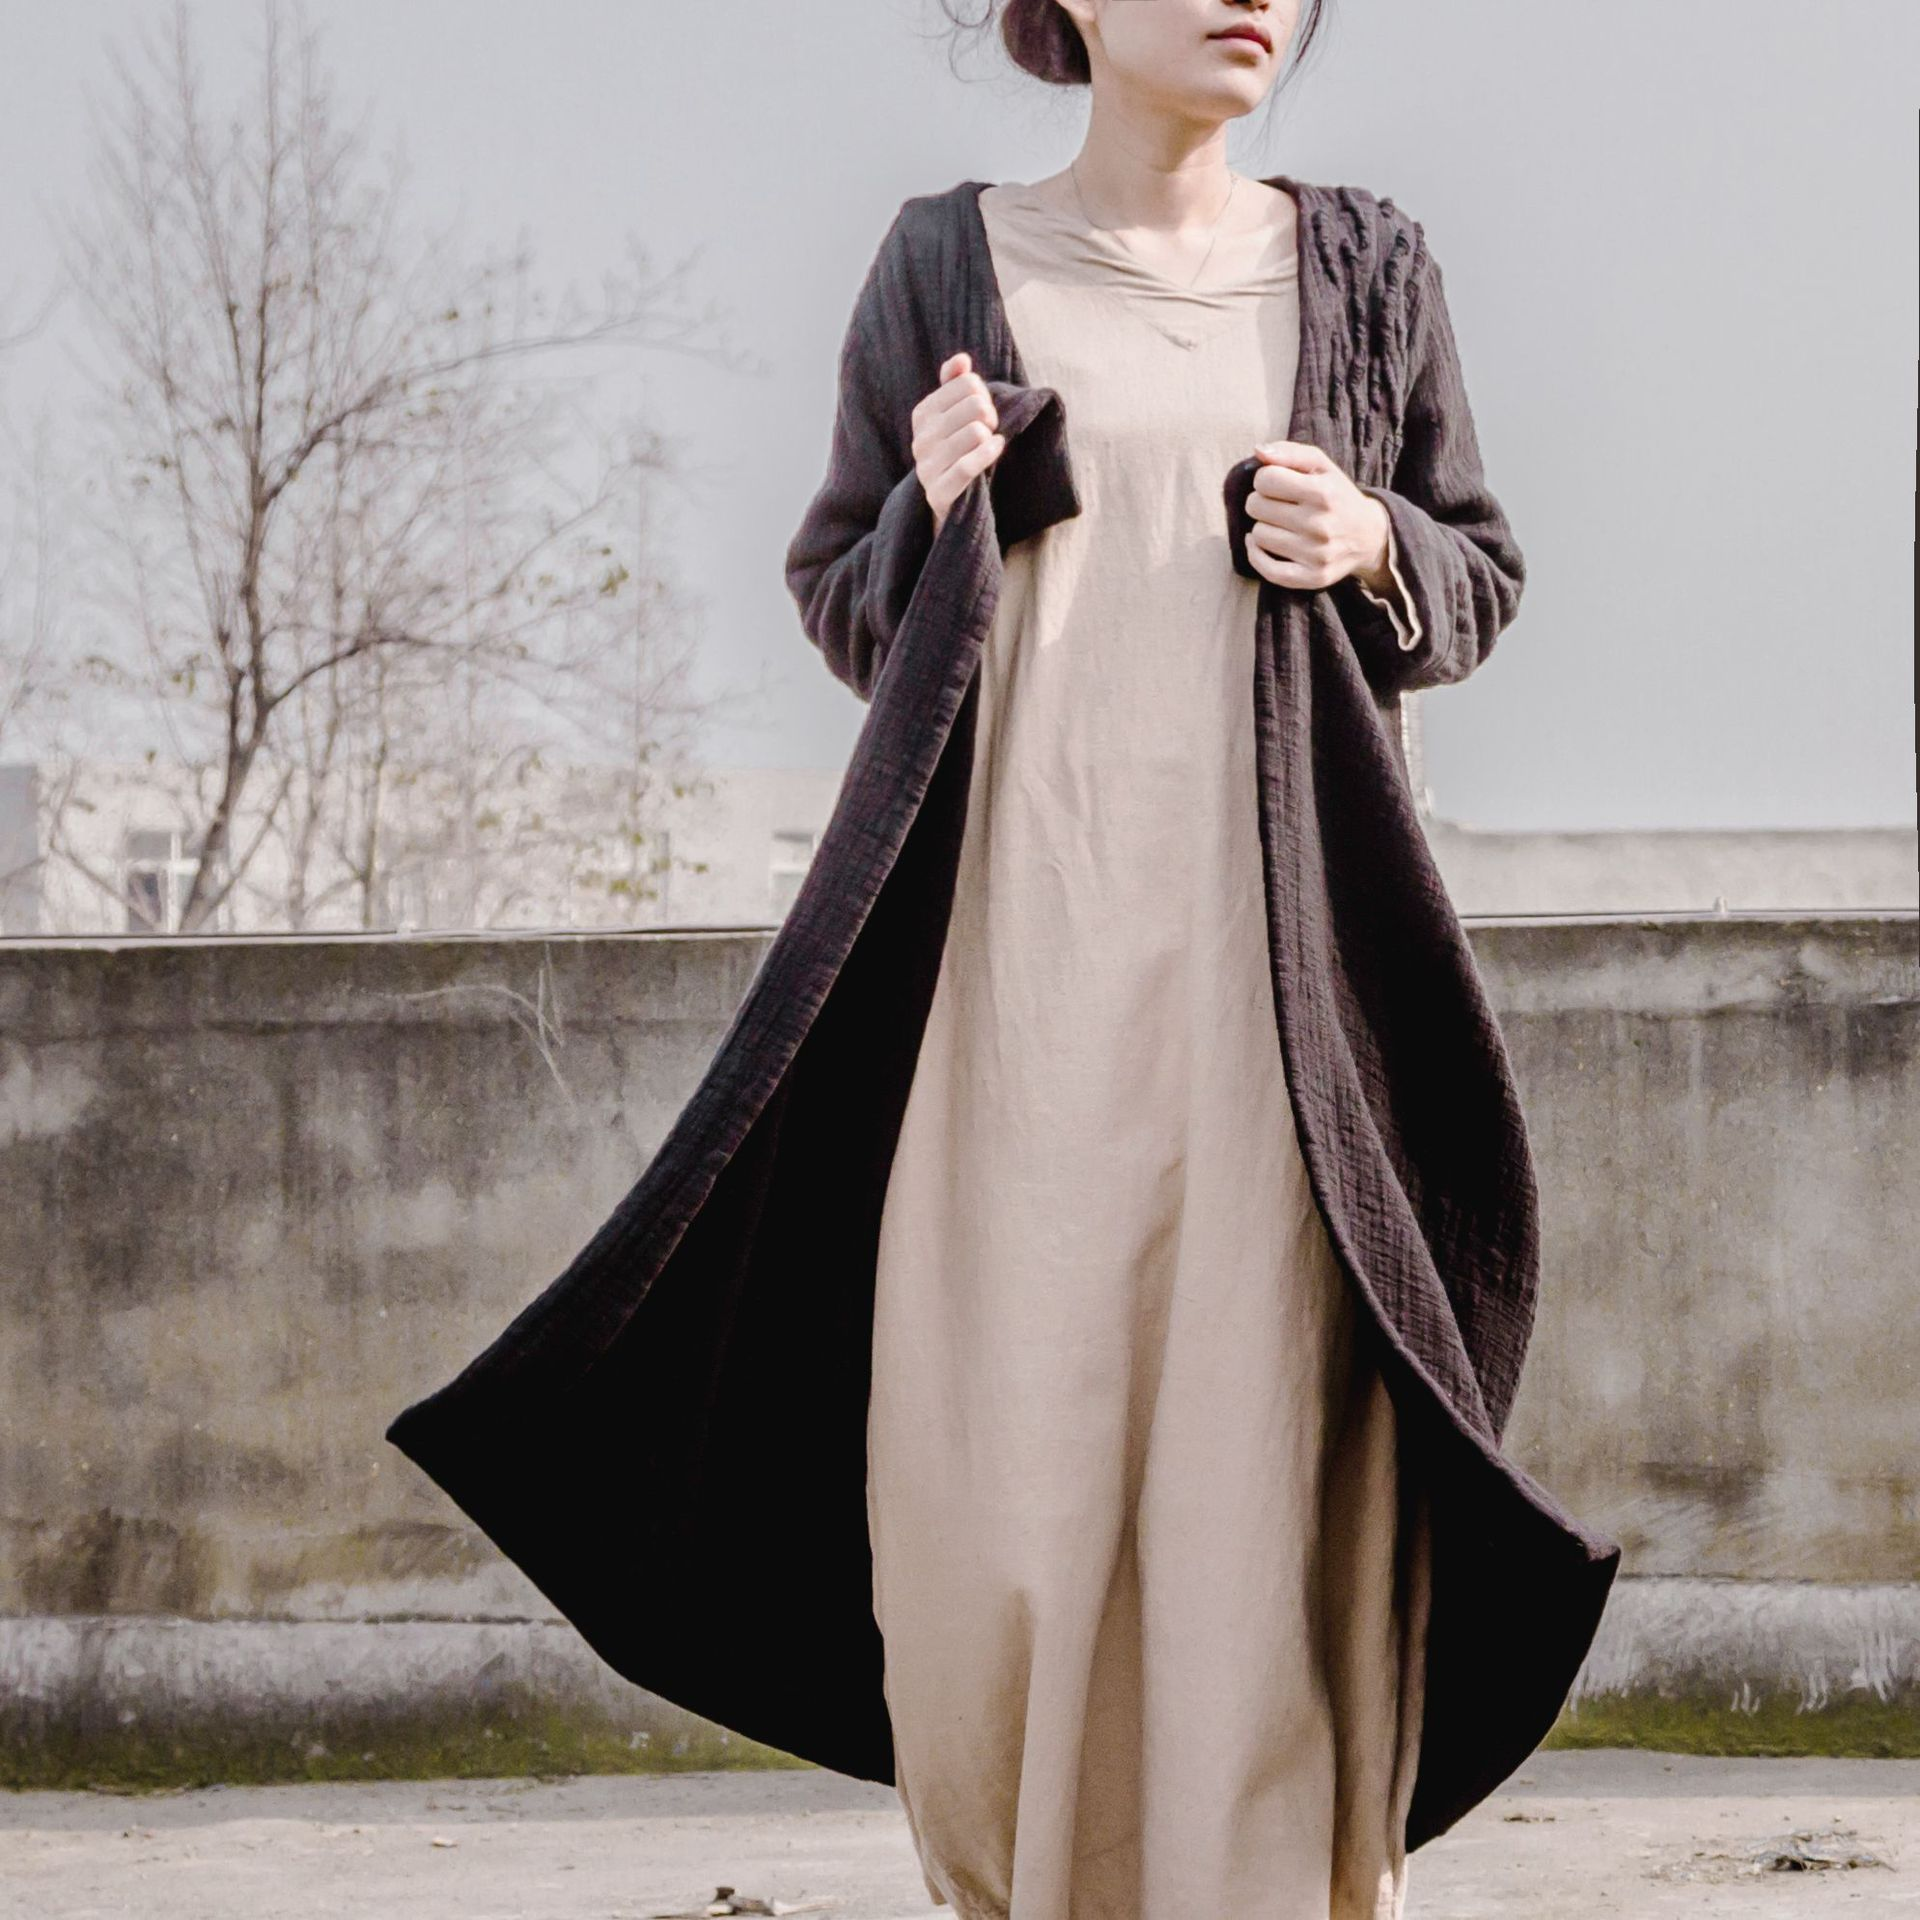 Retro Thick Dense V Neck Handmade Embroidery Women Cotton Linen Cardigan Coat, Double Layers Making Classical Long Trench Coats